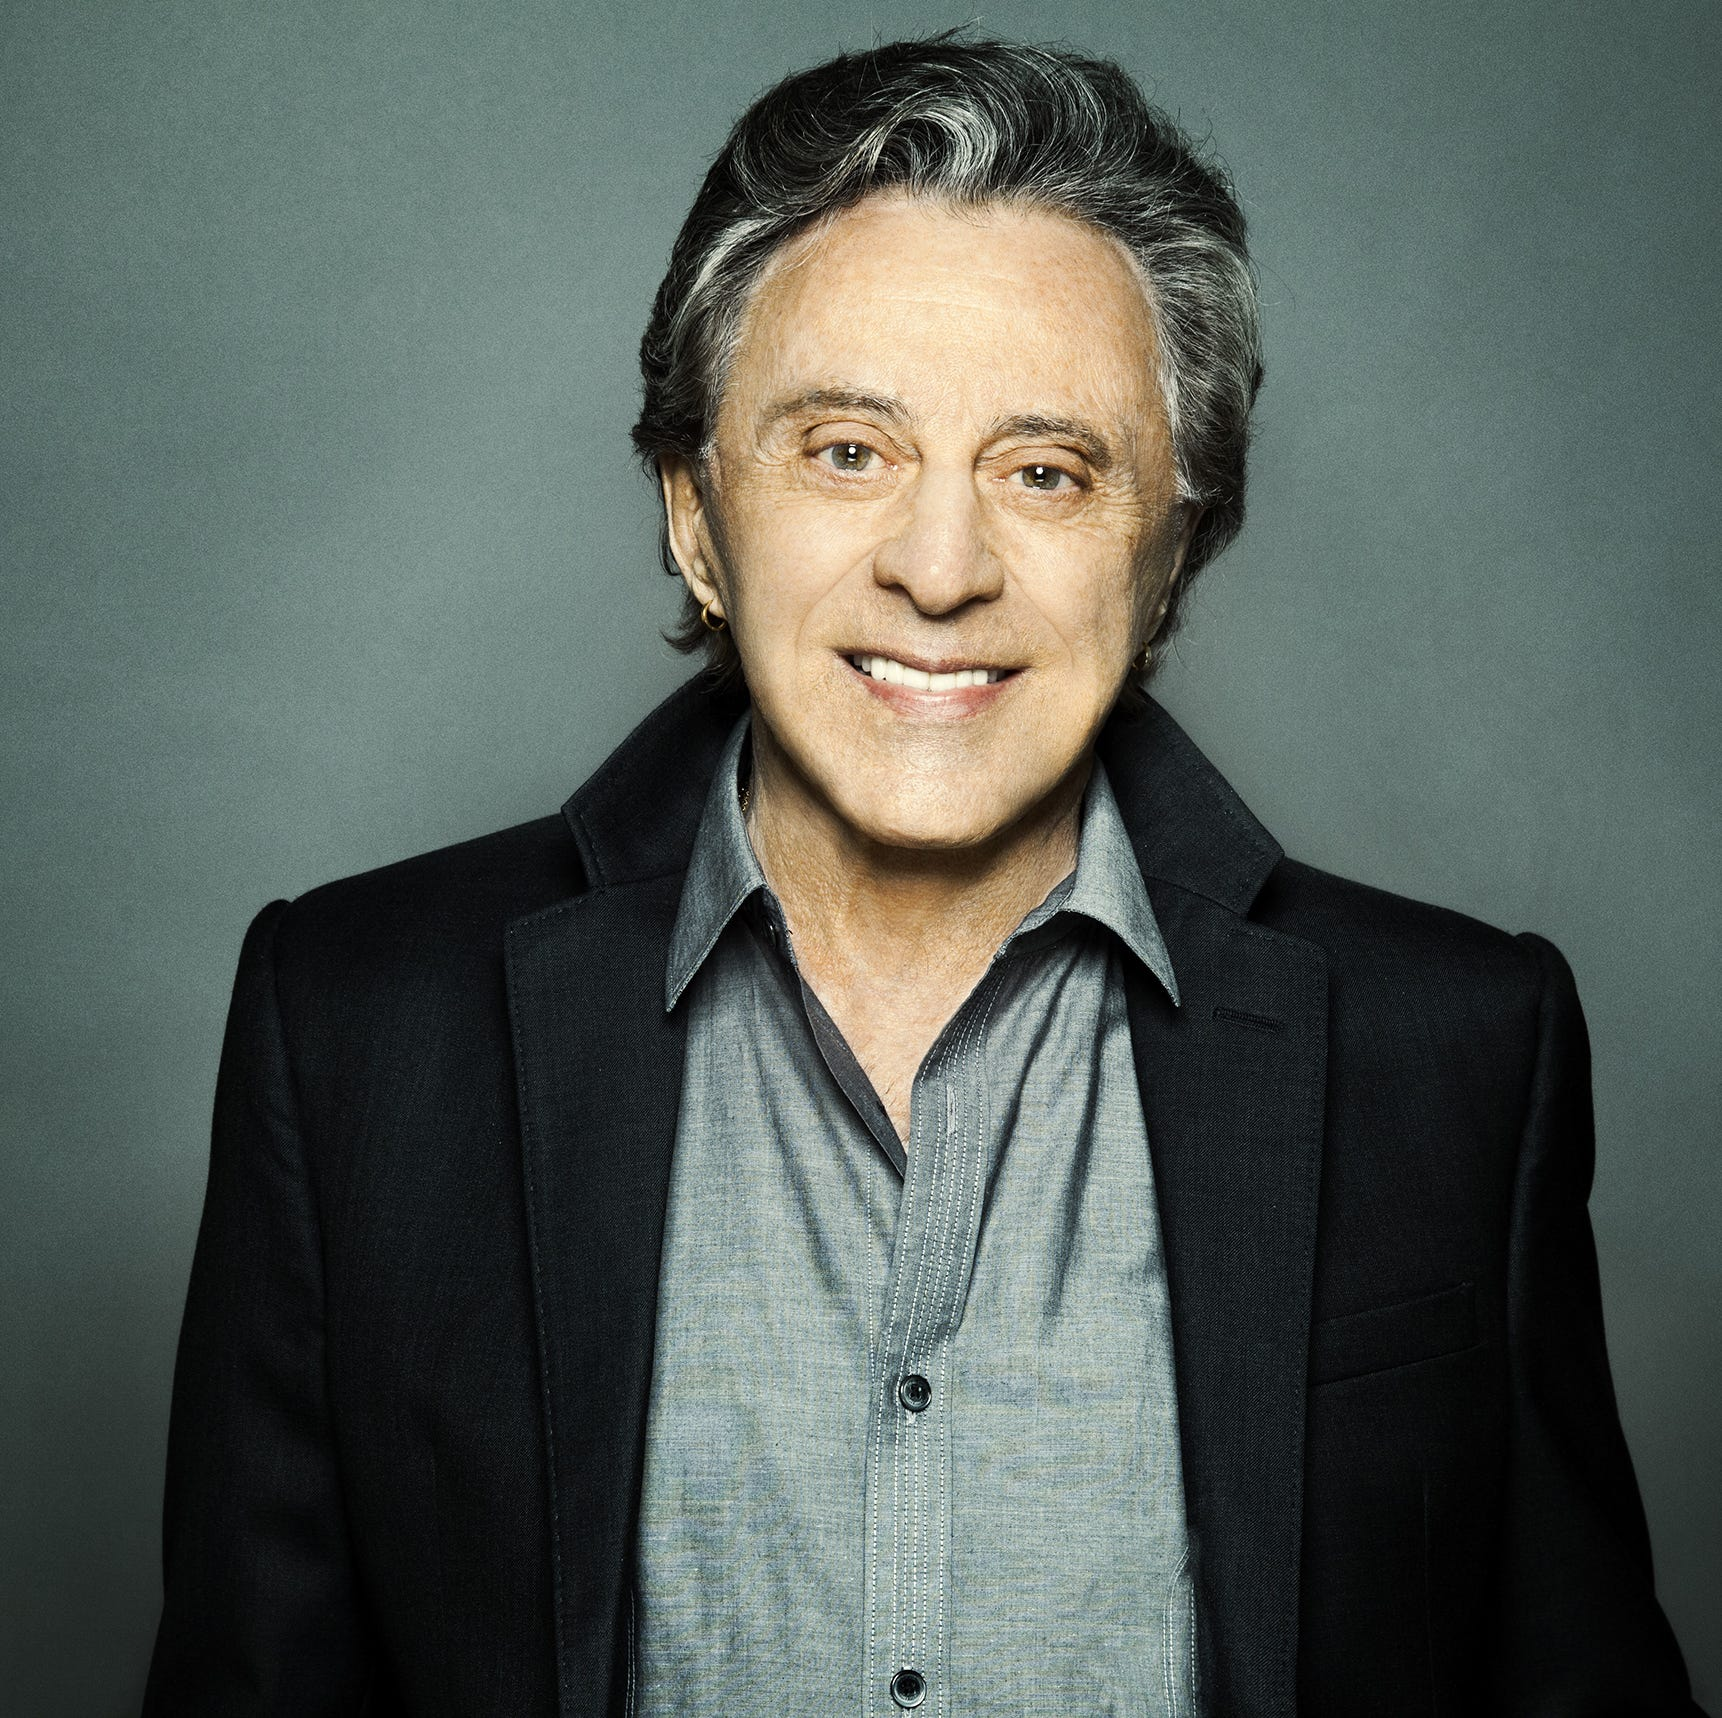 Oh, what a night: Frankie Valli & The Four Seasons to play Resch on Sept. 27